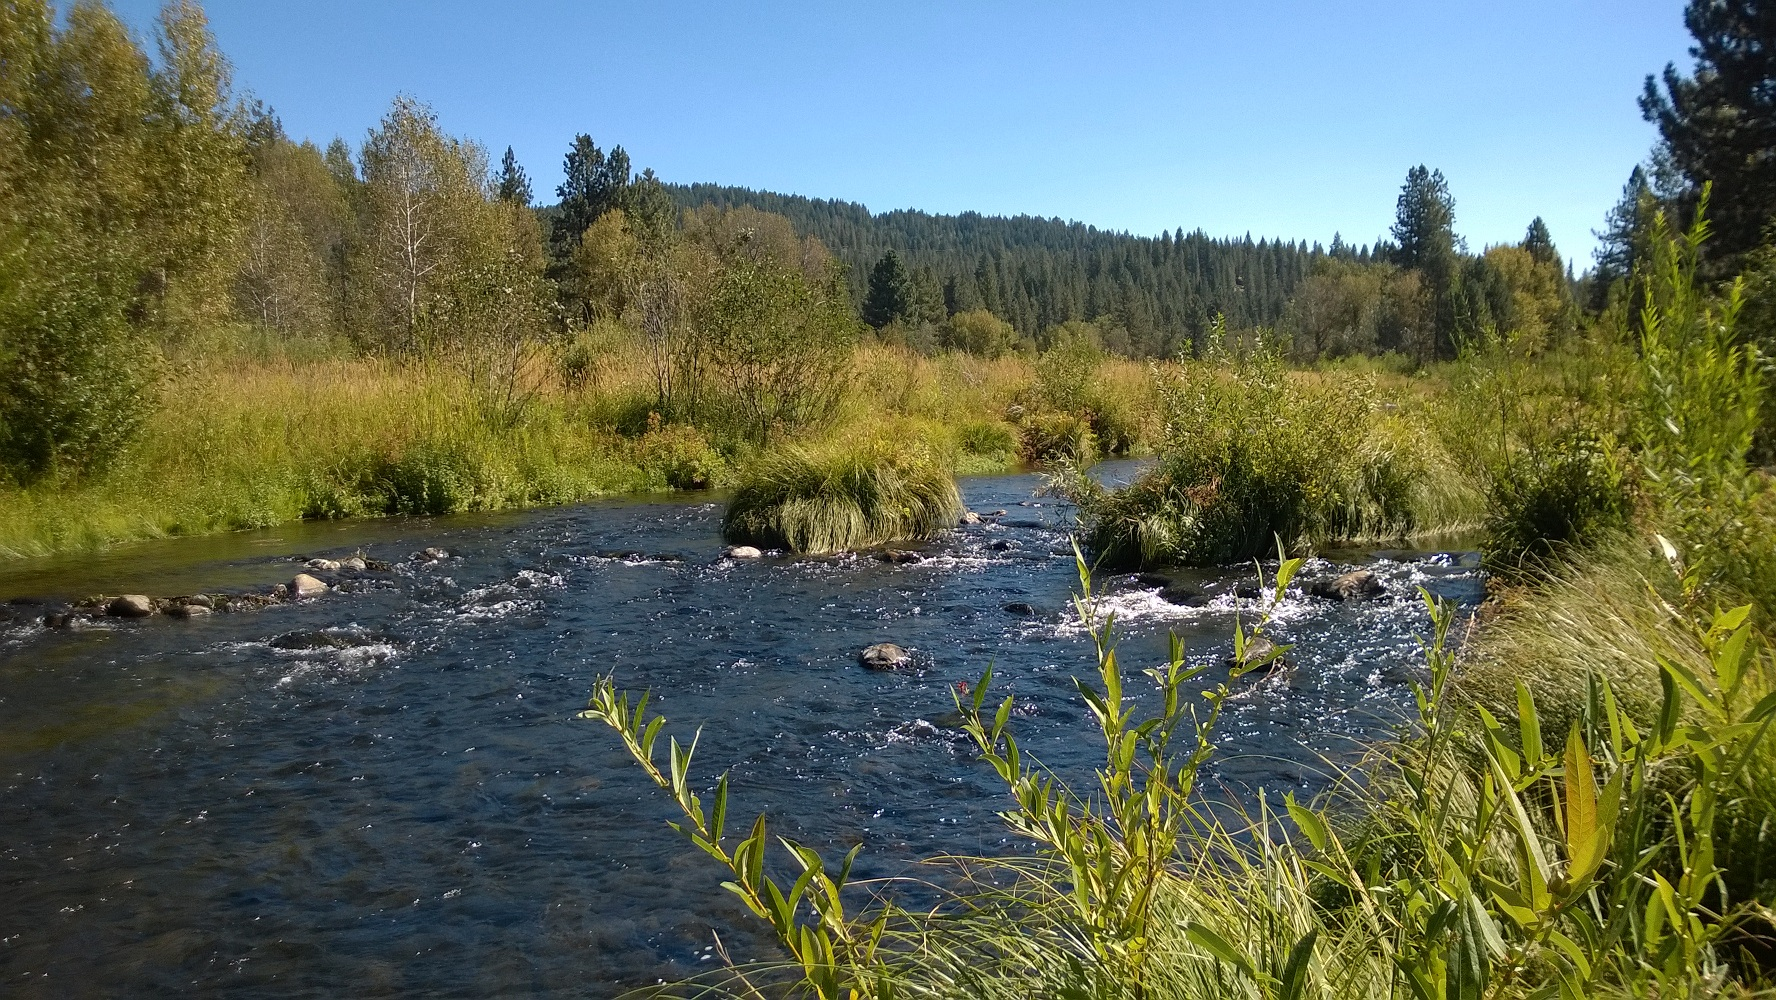 The Middle Fork Feather River near Graeagle- while much of the lower length of the Middle Fork is a designated Wild and Scenic River, some anglers believe that development and changing land use in the upstream reaches has negatively affected the fishery in those areas over recent years. Angling represents a valuable attractant for tourism in the area.